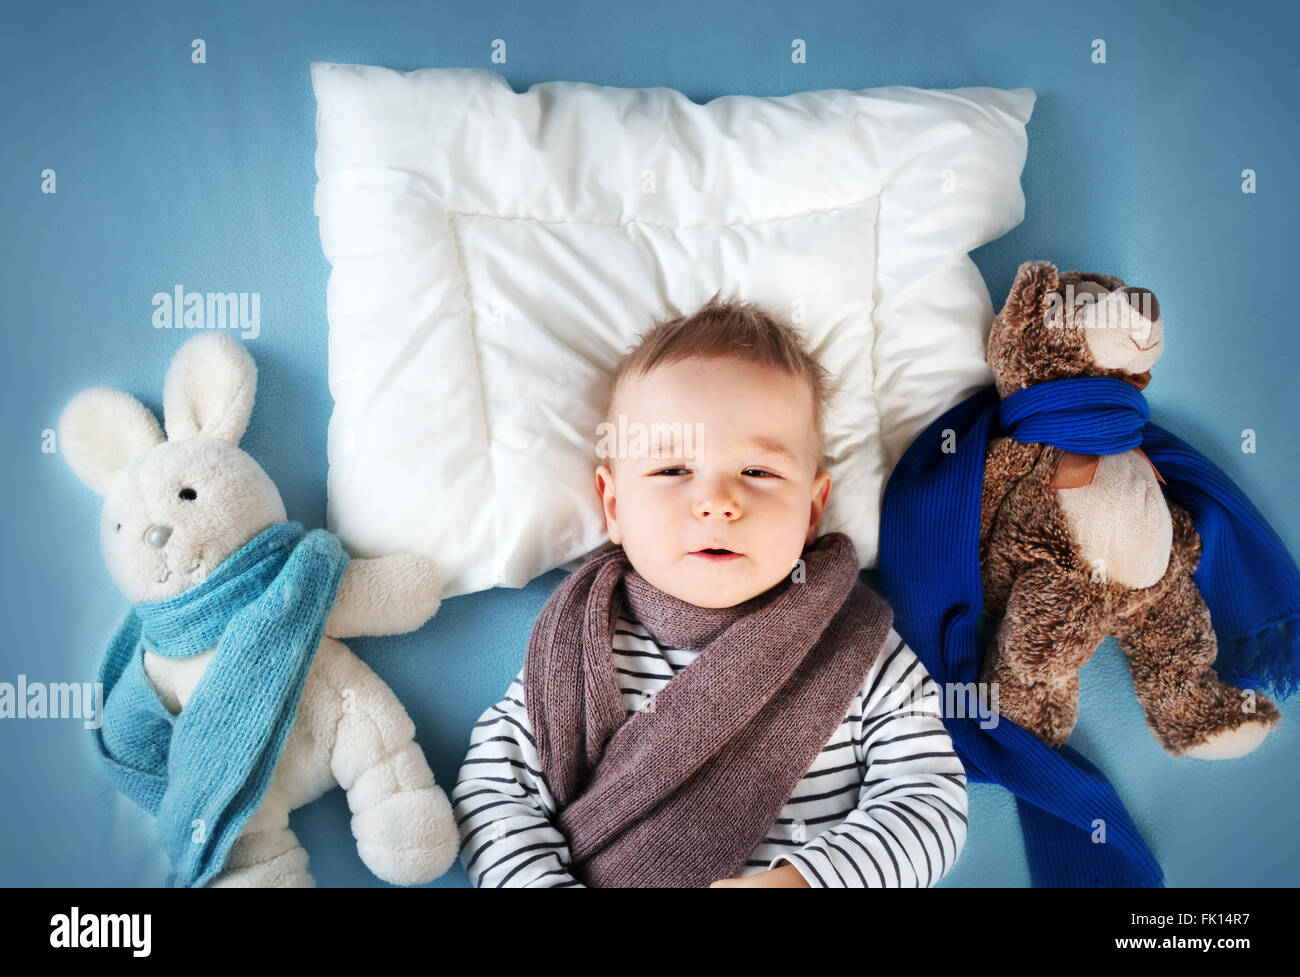 Ill boy lying in bed - Stock Image